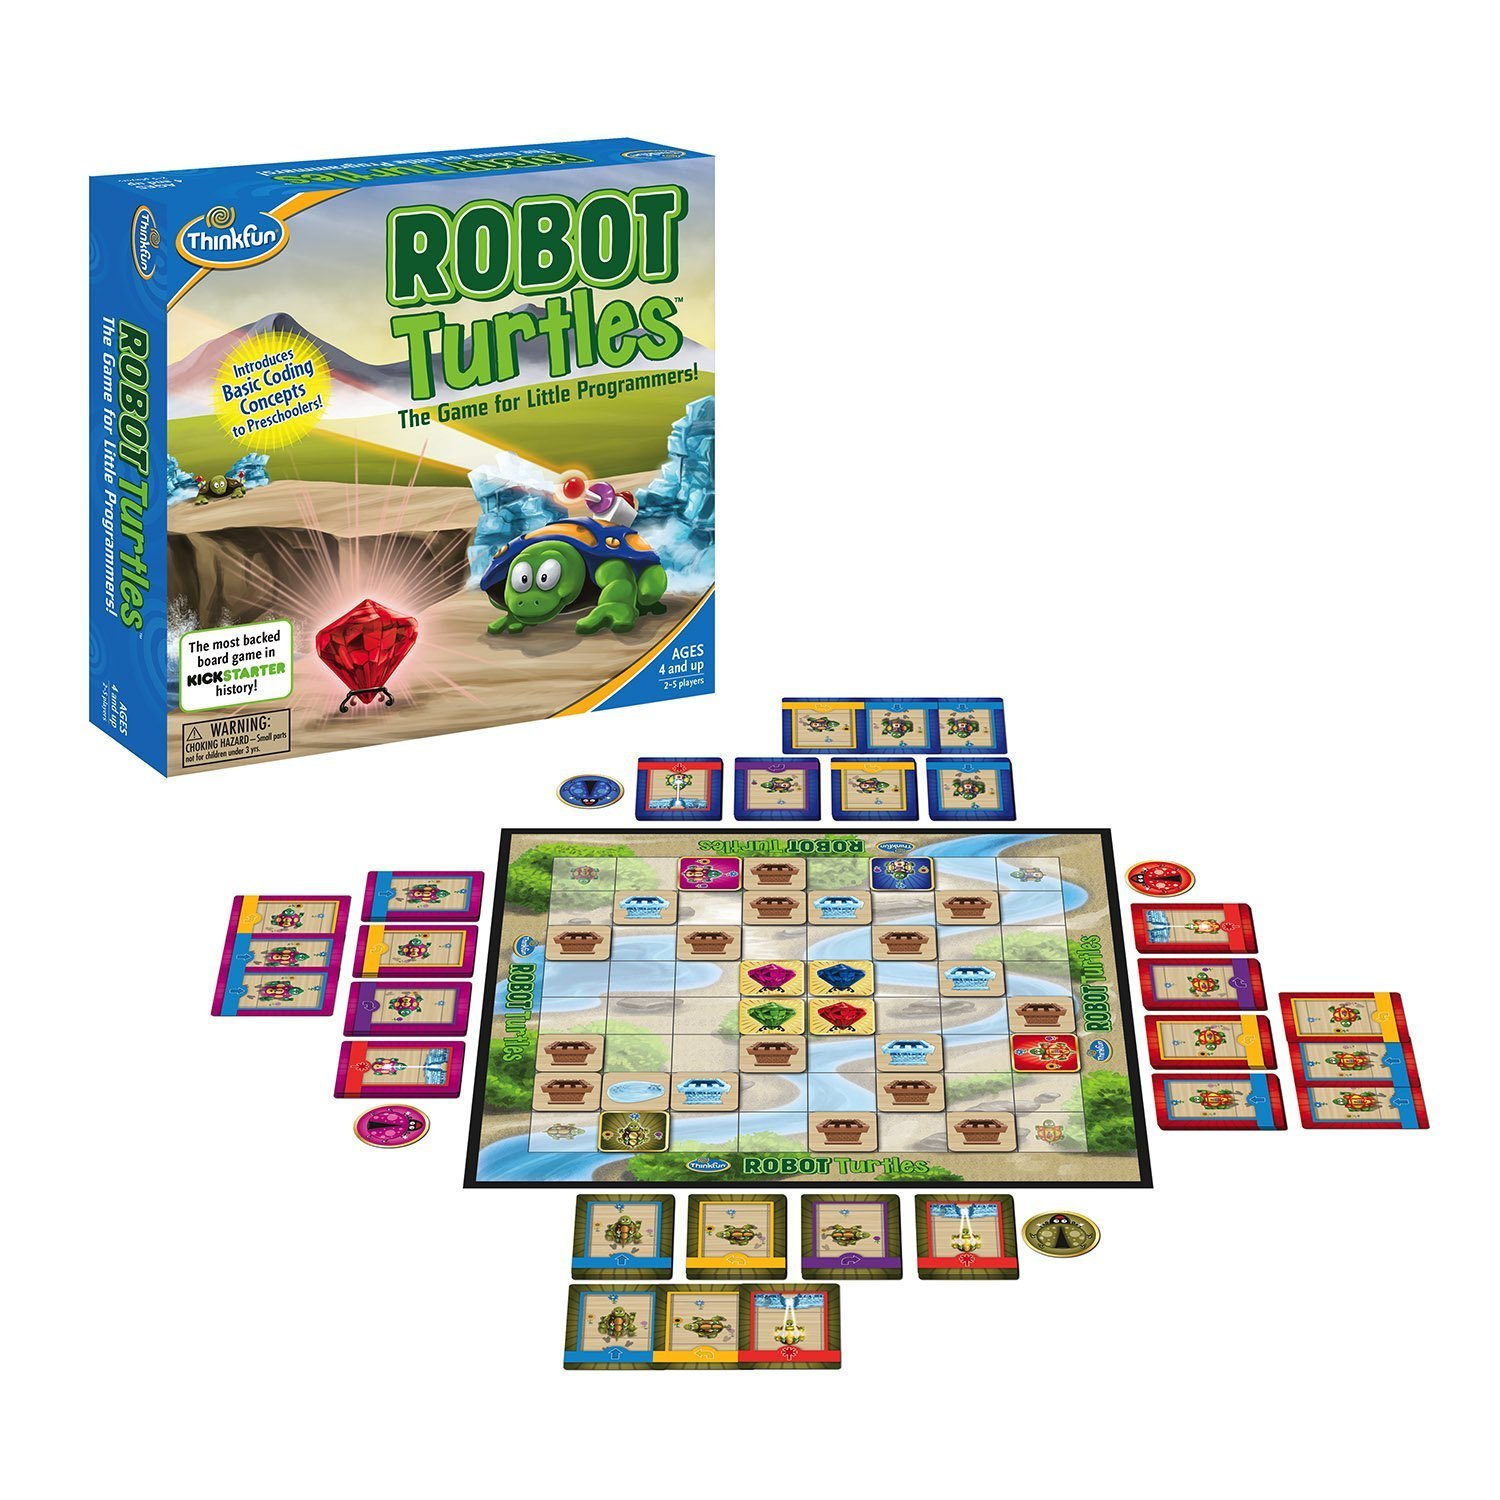 Robot Turtles Game for Little Programmers by ThinkFun robot-turtles